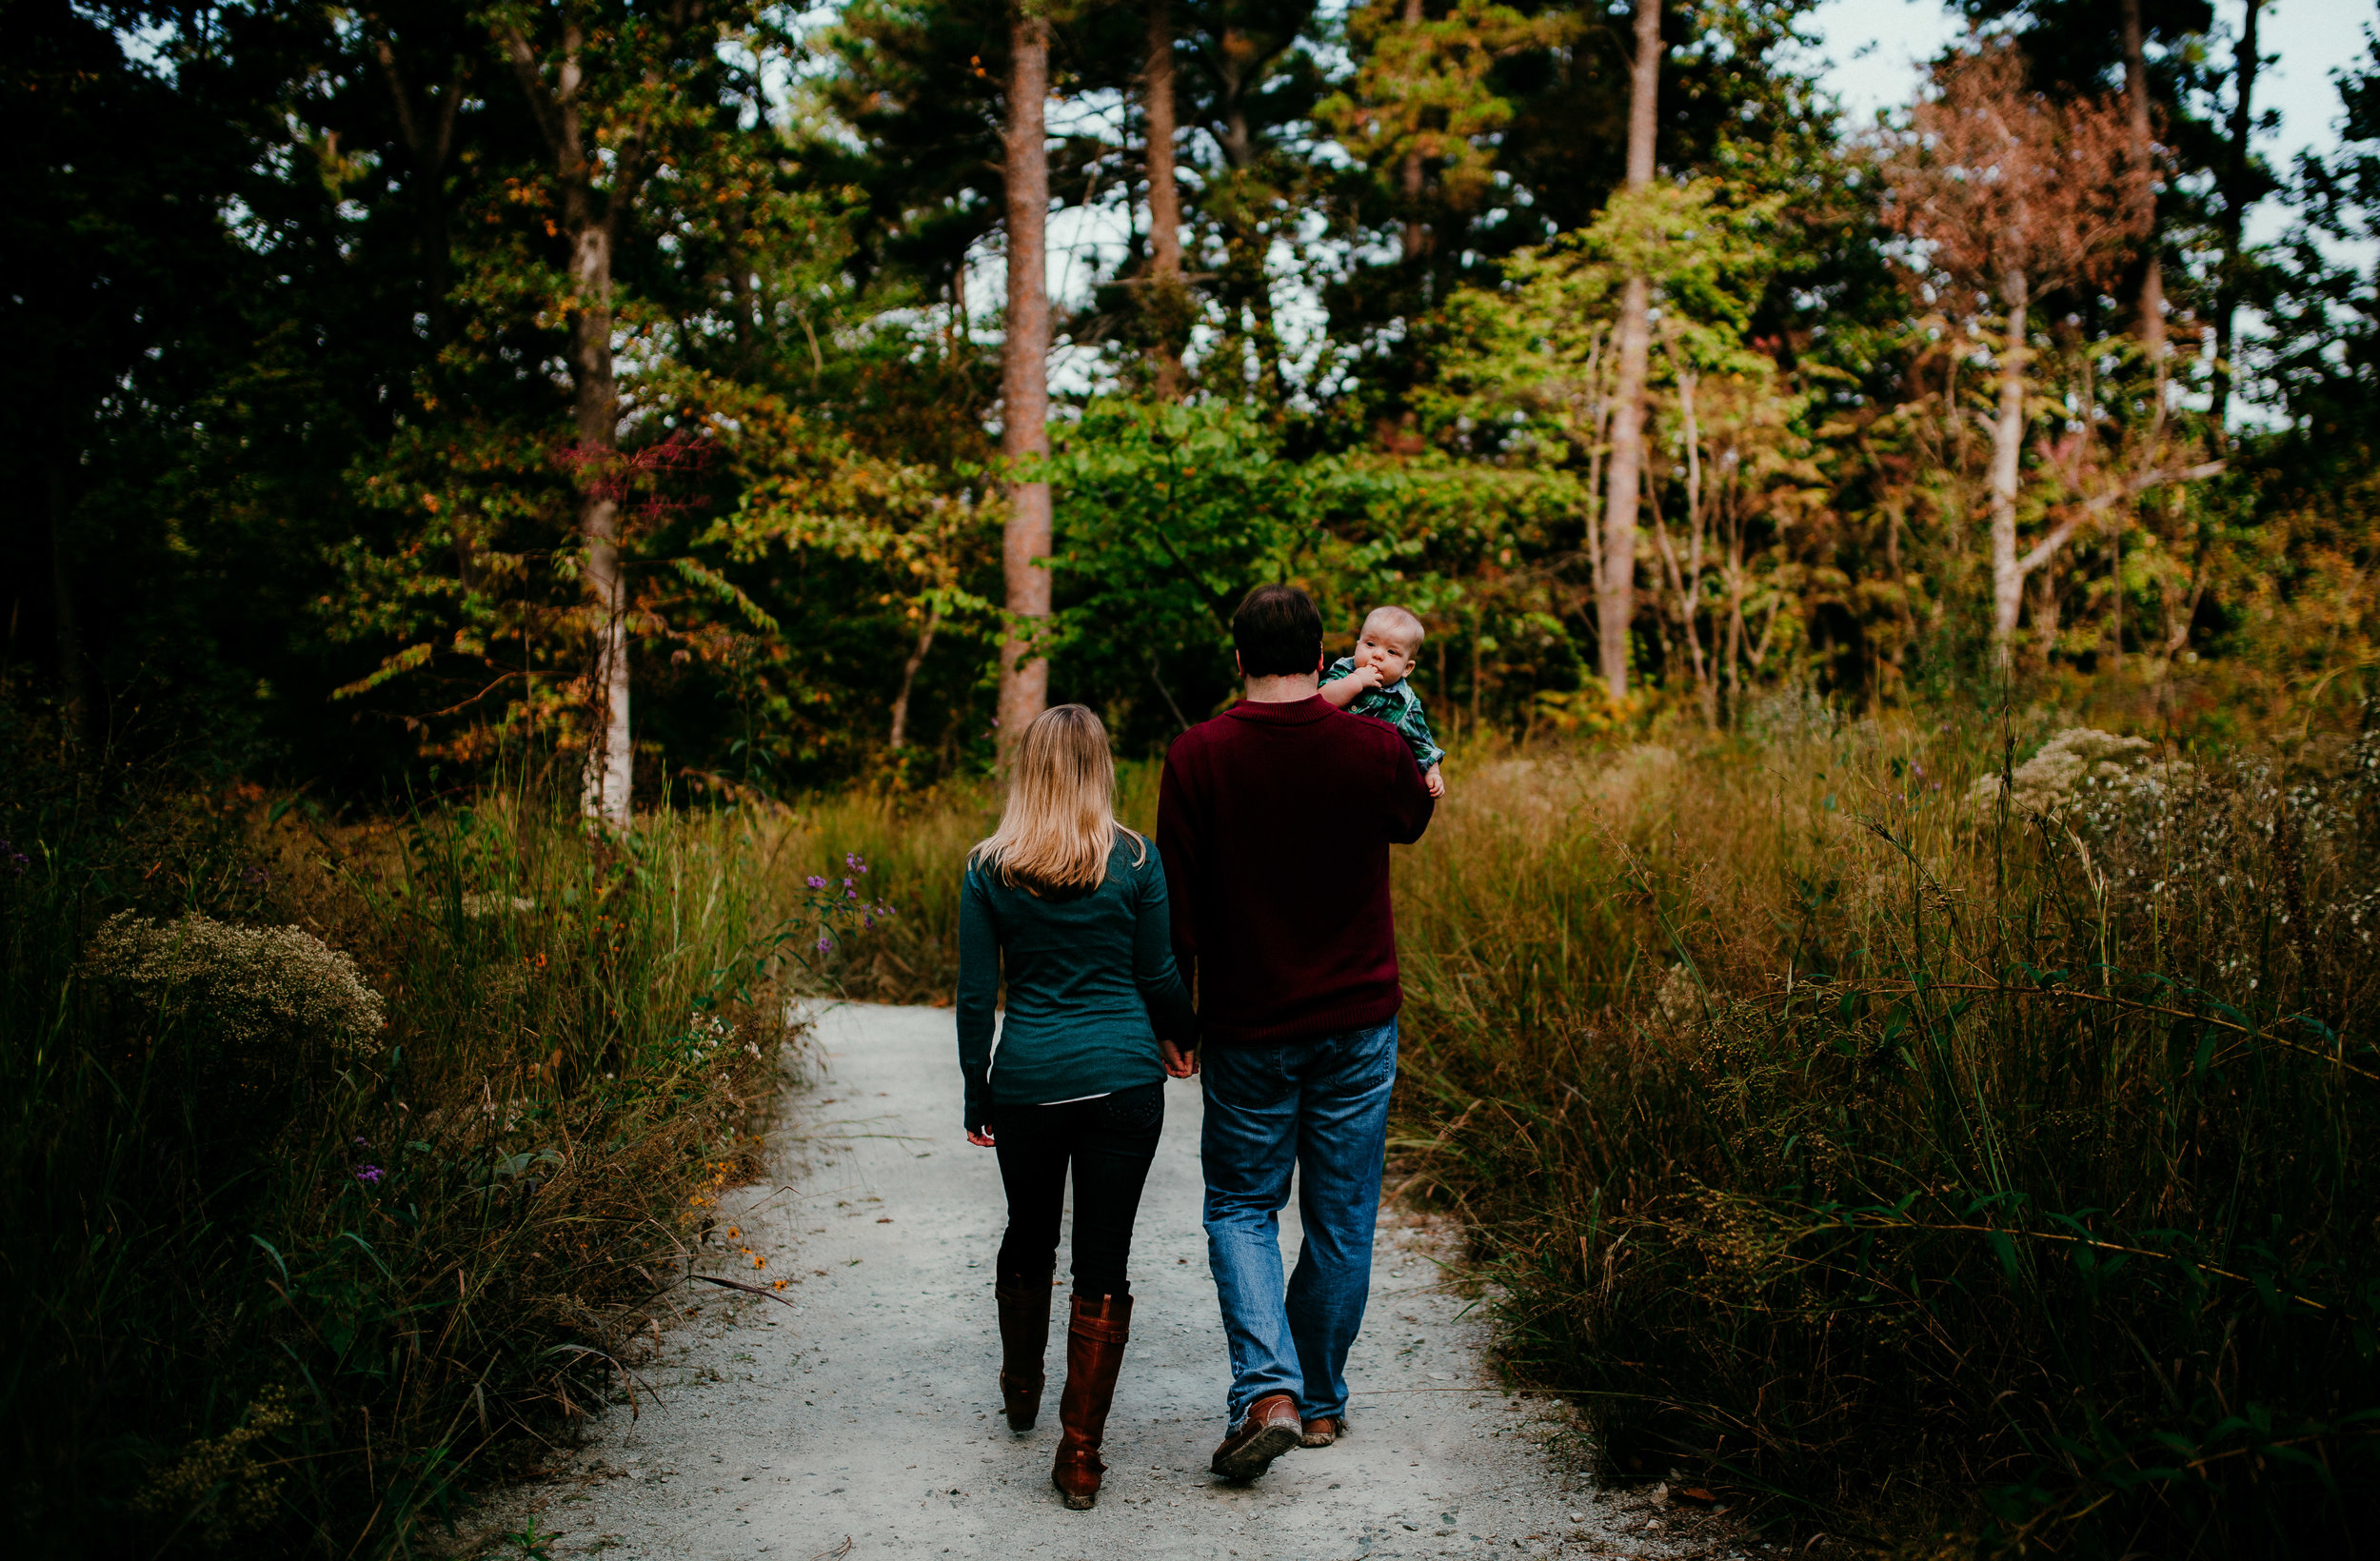 mom and dad and baby walking amongst colorful trees during their Fall family session at Duke Gardens in Durham North Carolina | Hanna Hill photography | Raleigh birth and family photographer